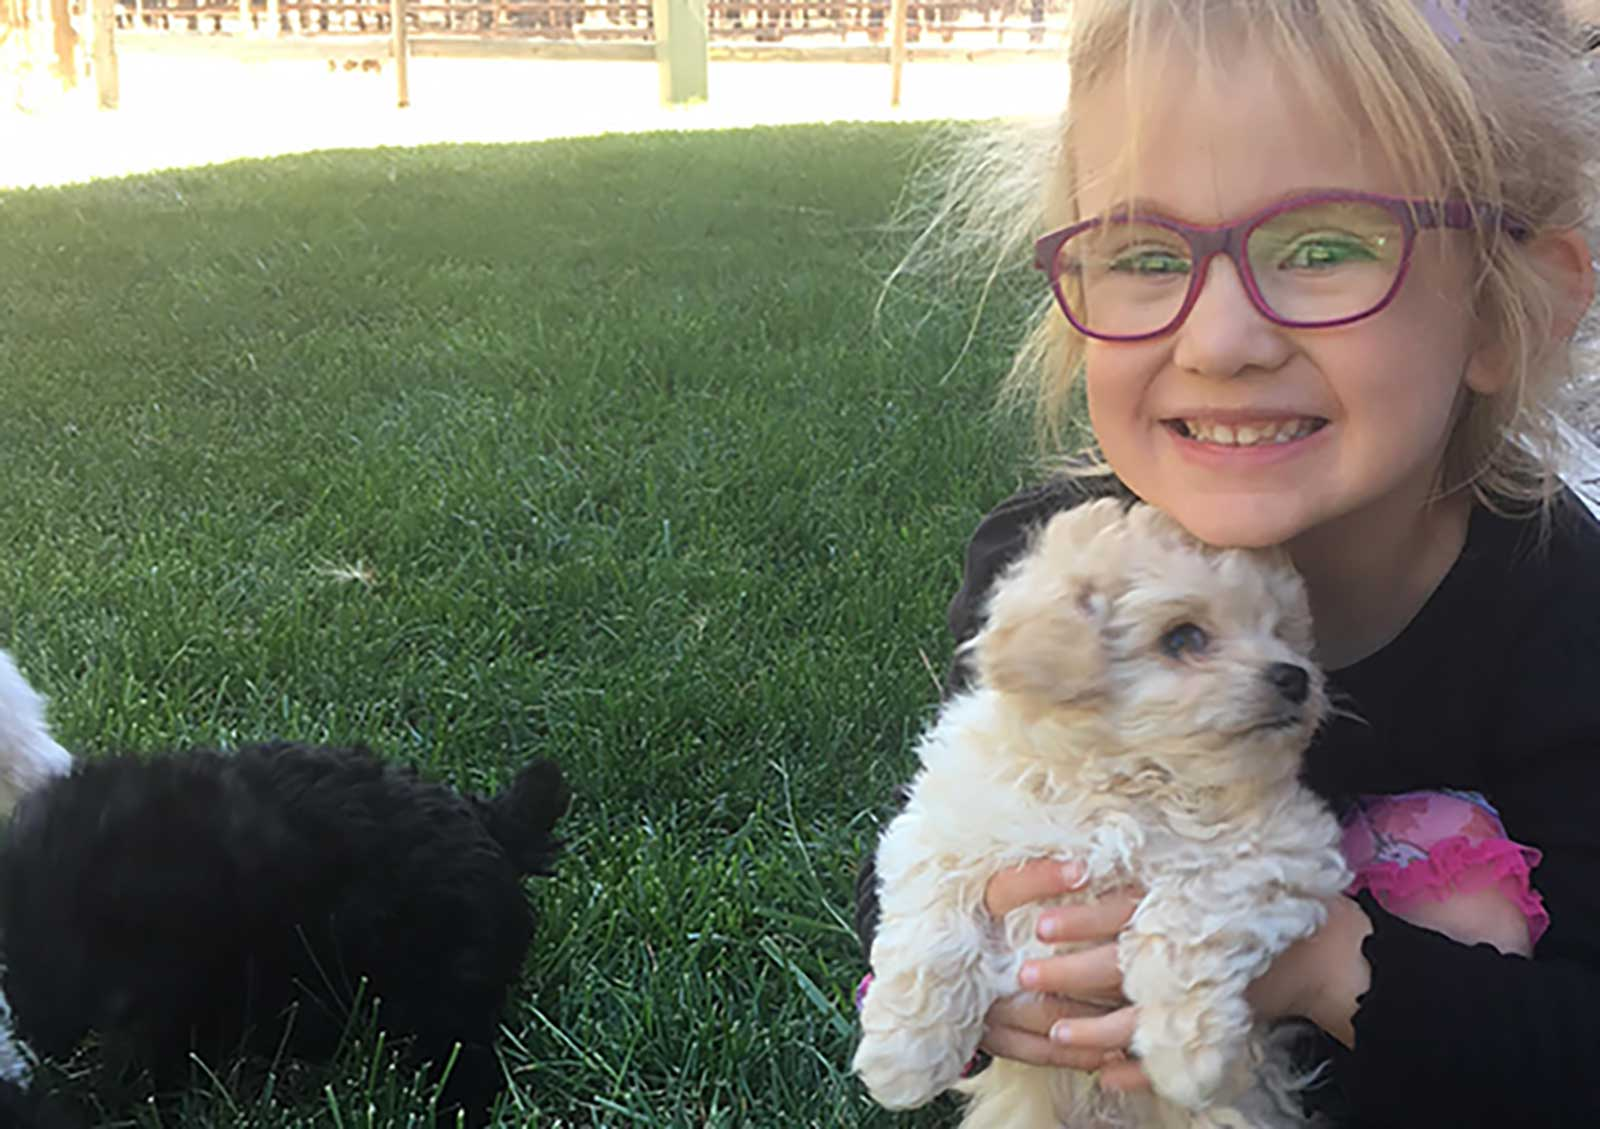 Naomi-and-Puppy-Web-2